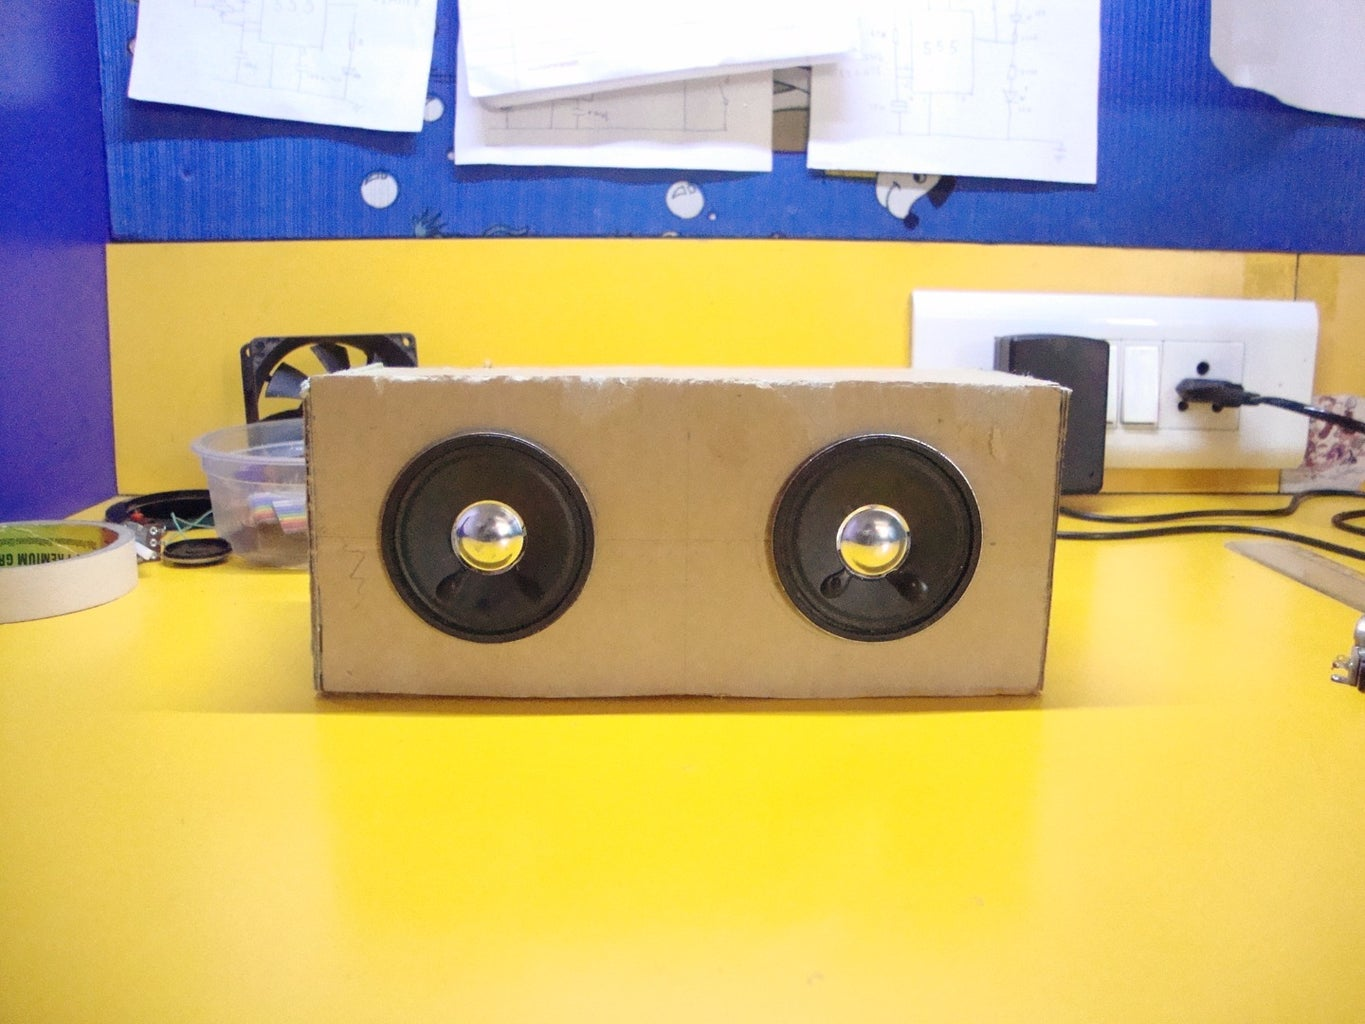 Install the Speakers